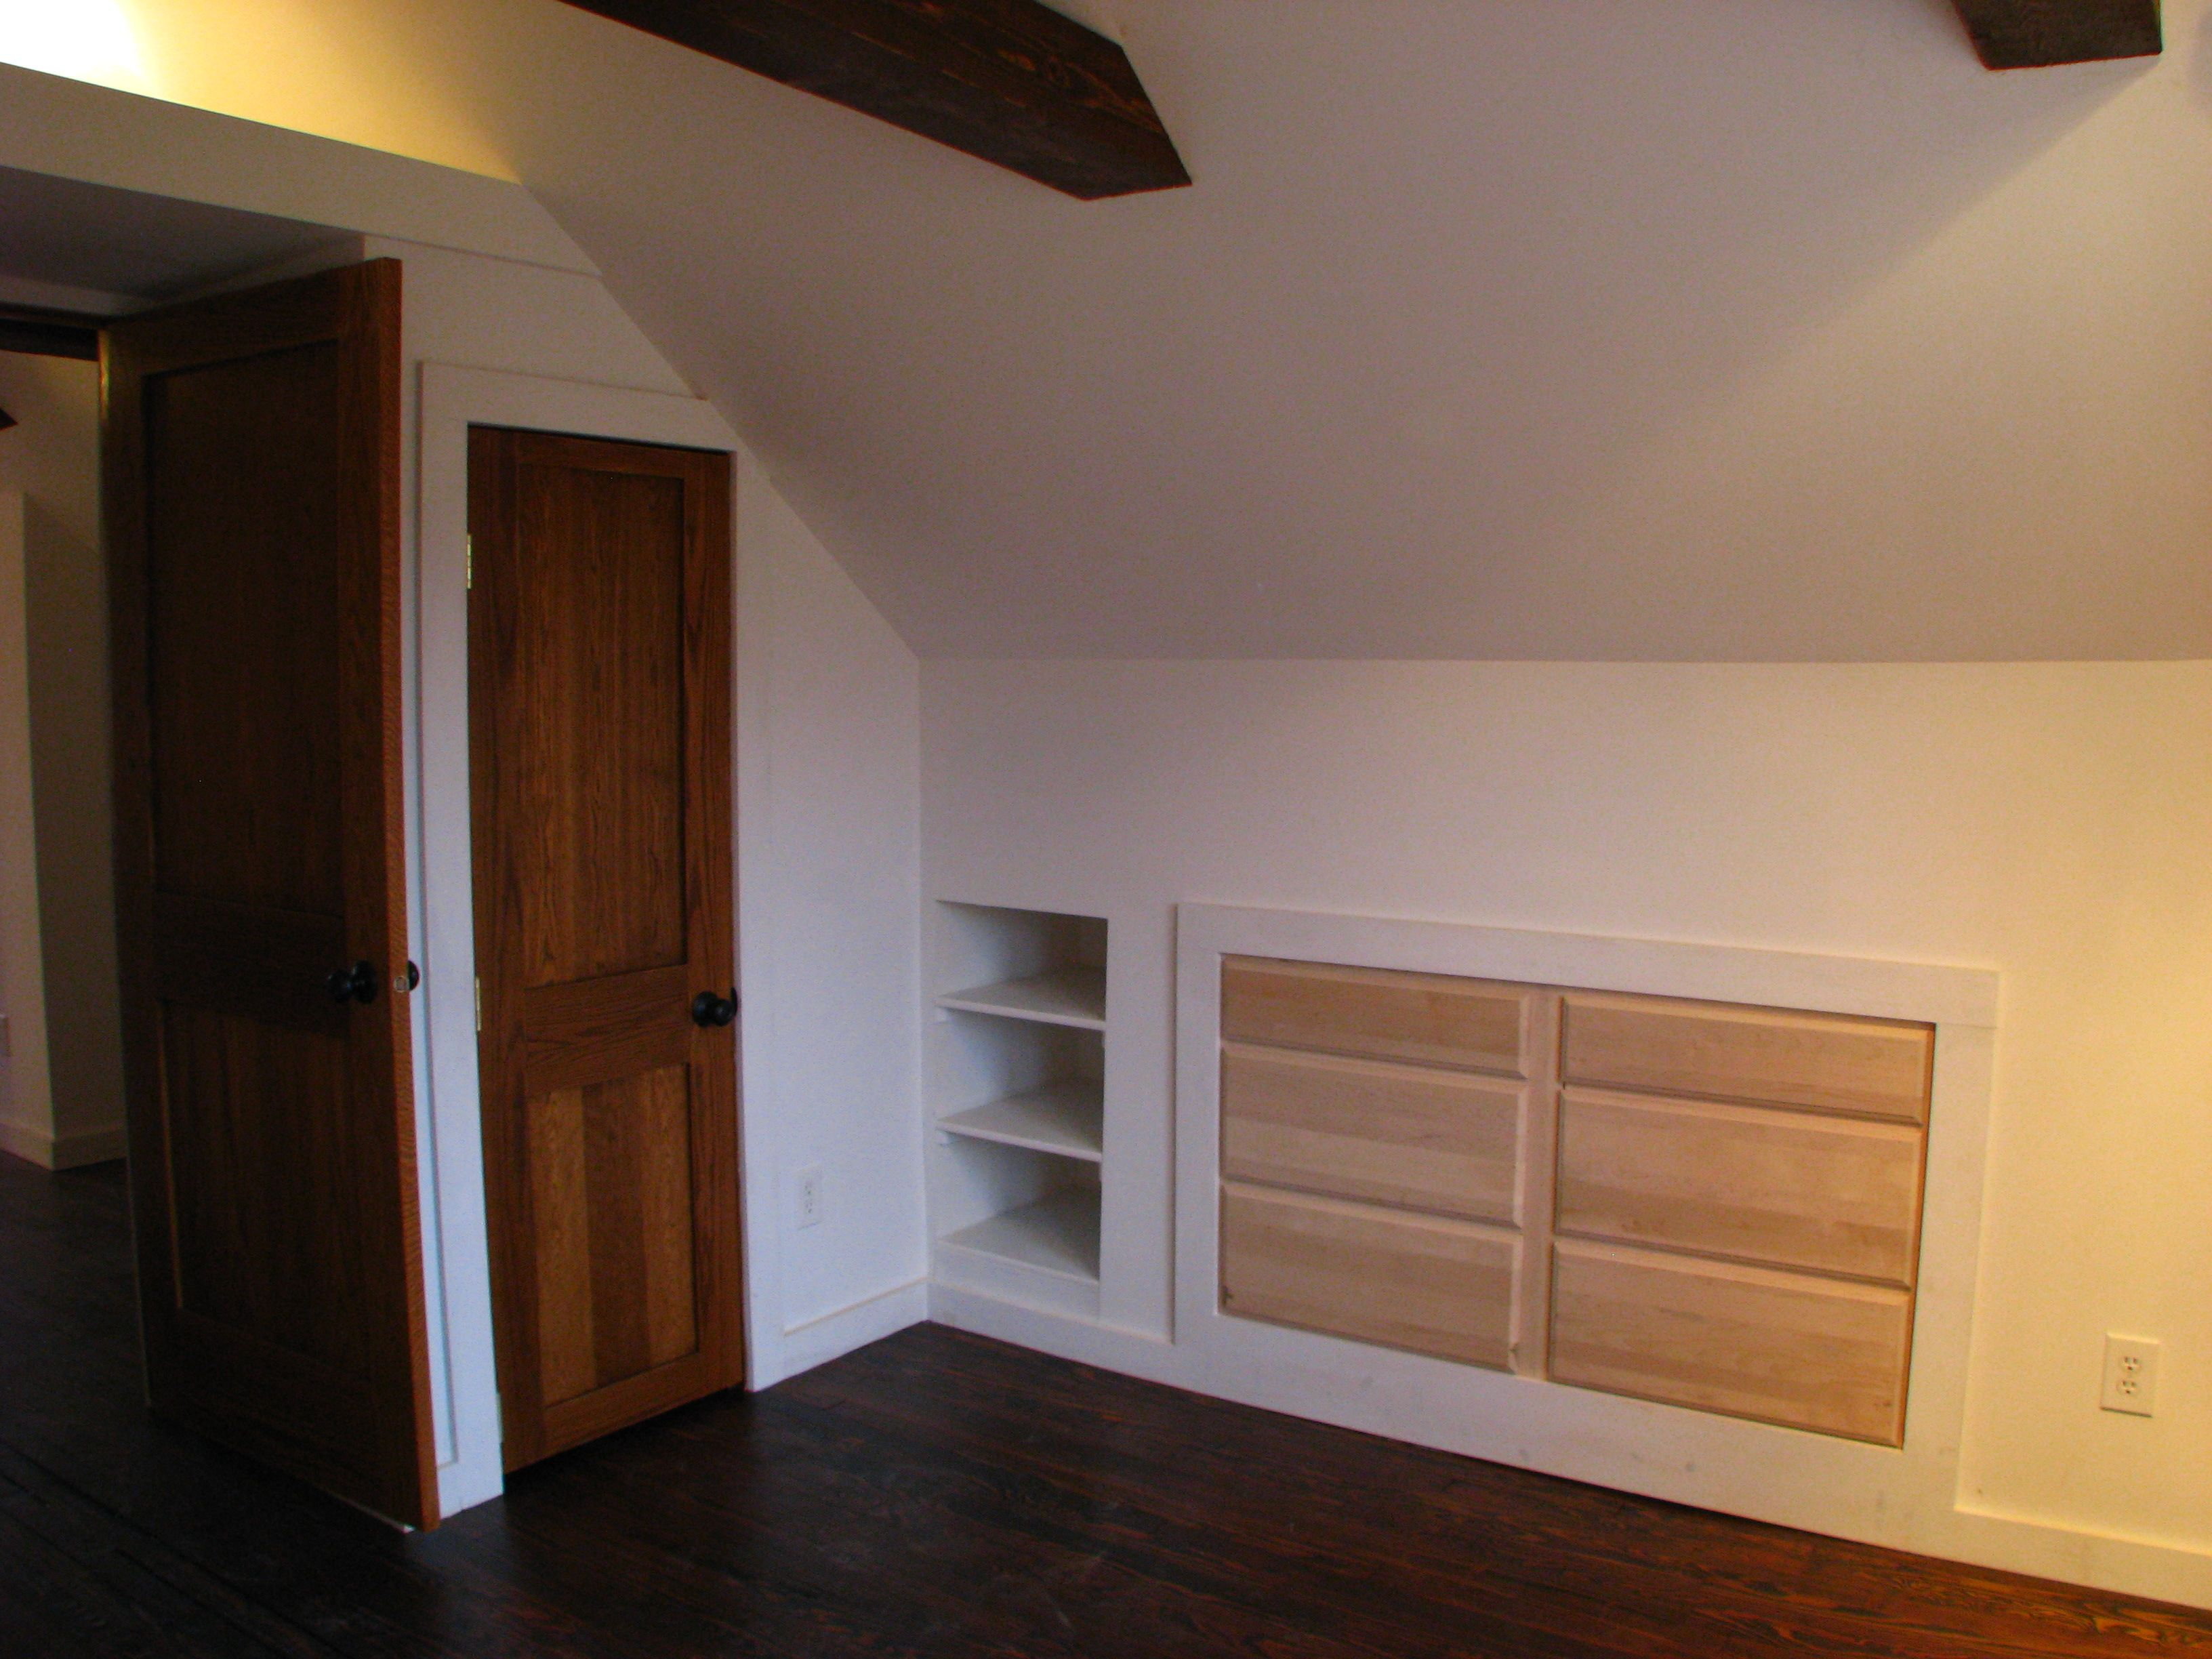 A Rebirth For A 1920s Cottage Build A Closet Built In Dresser Wall Storage